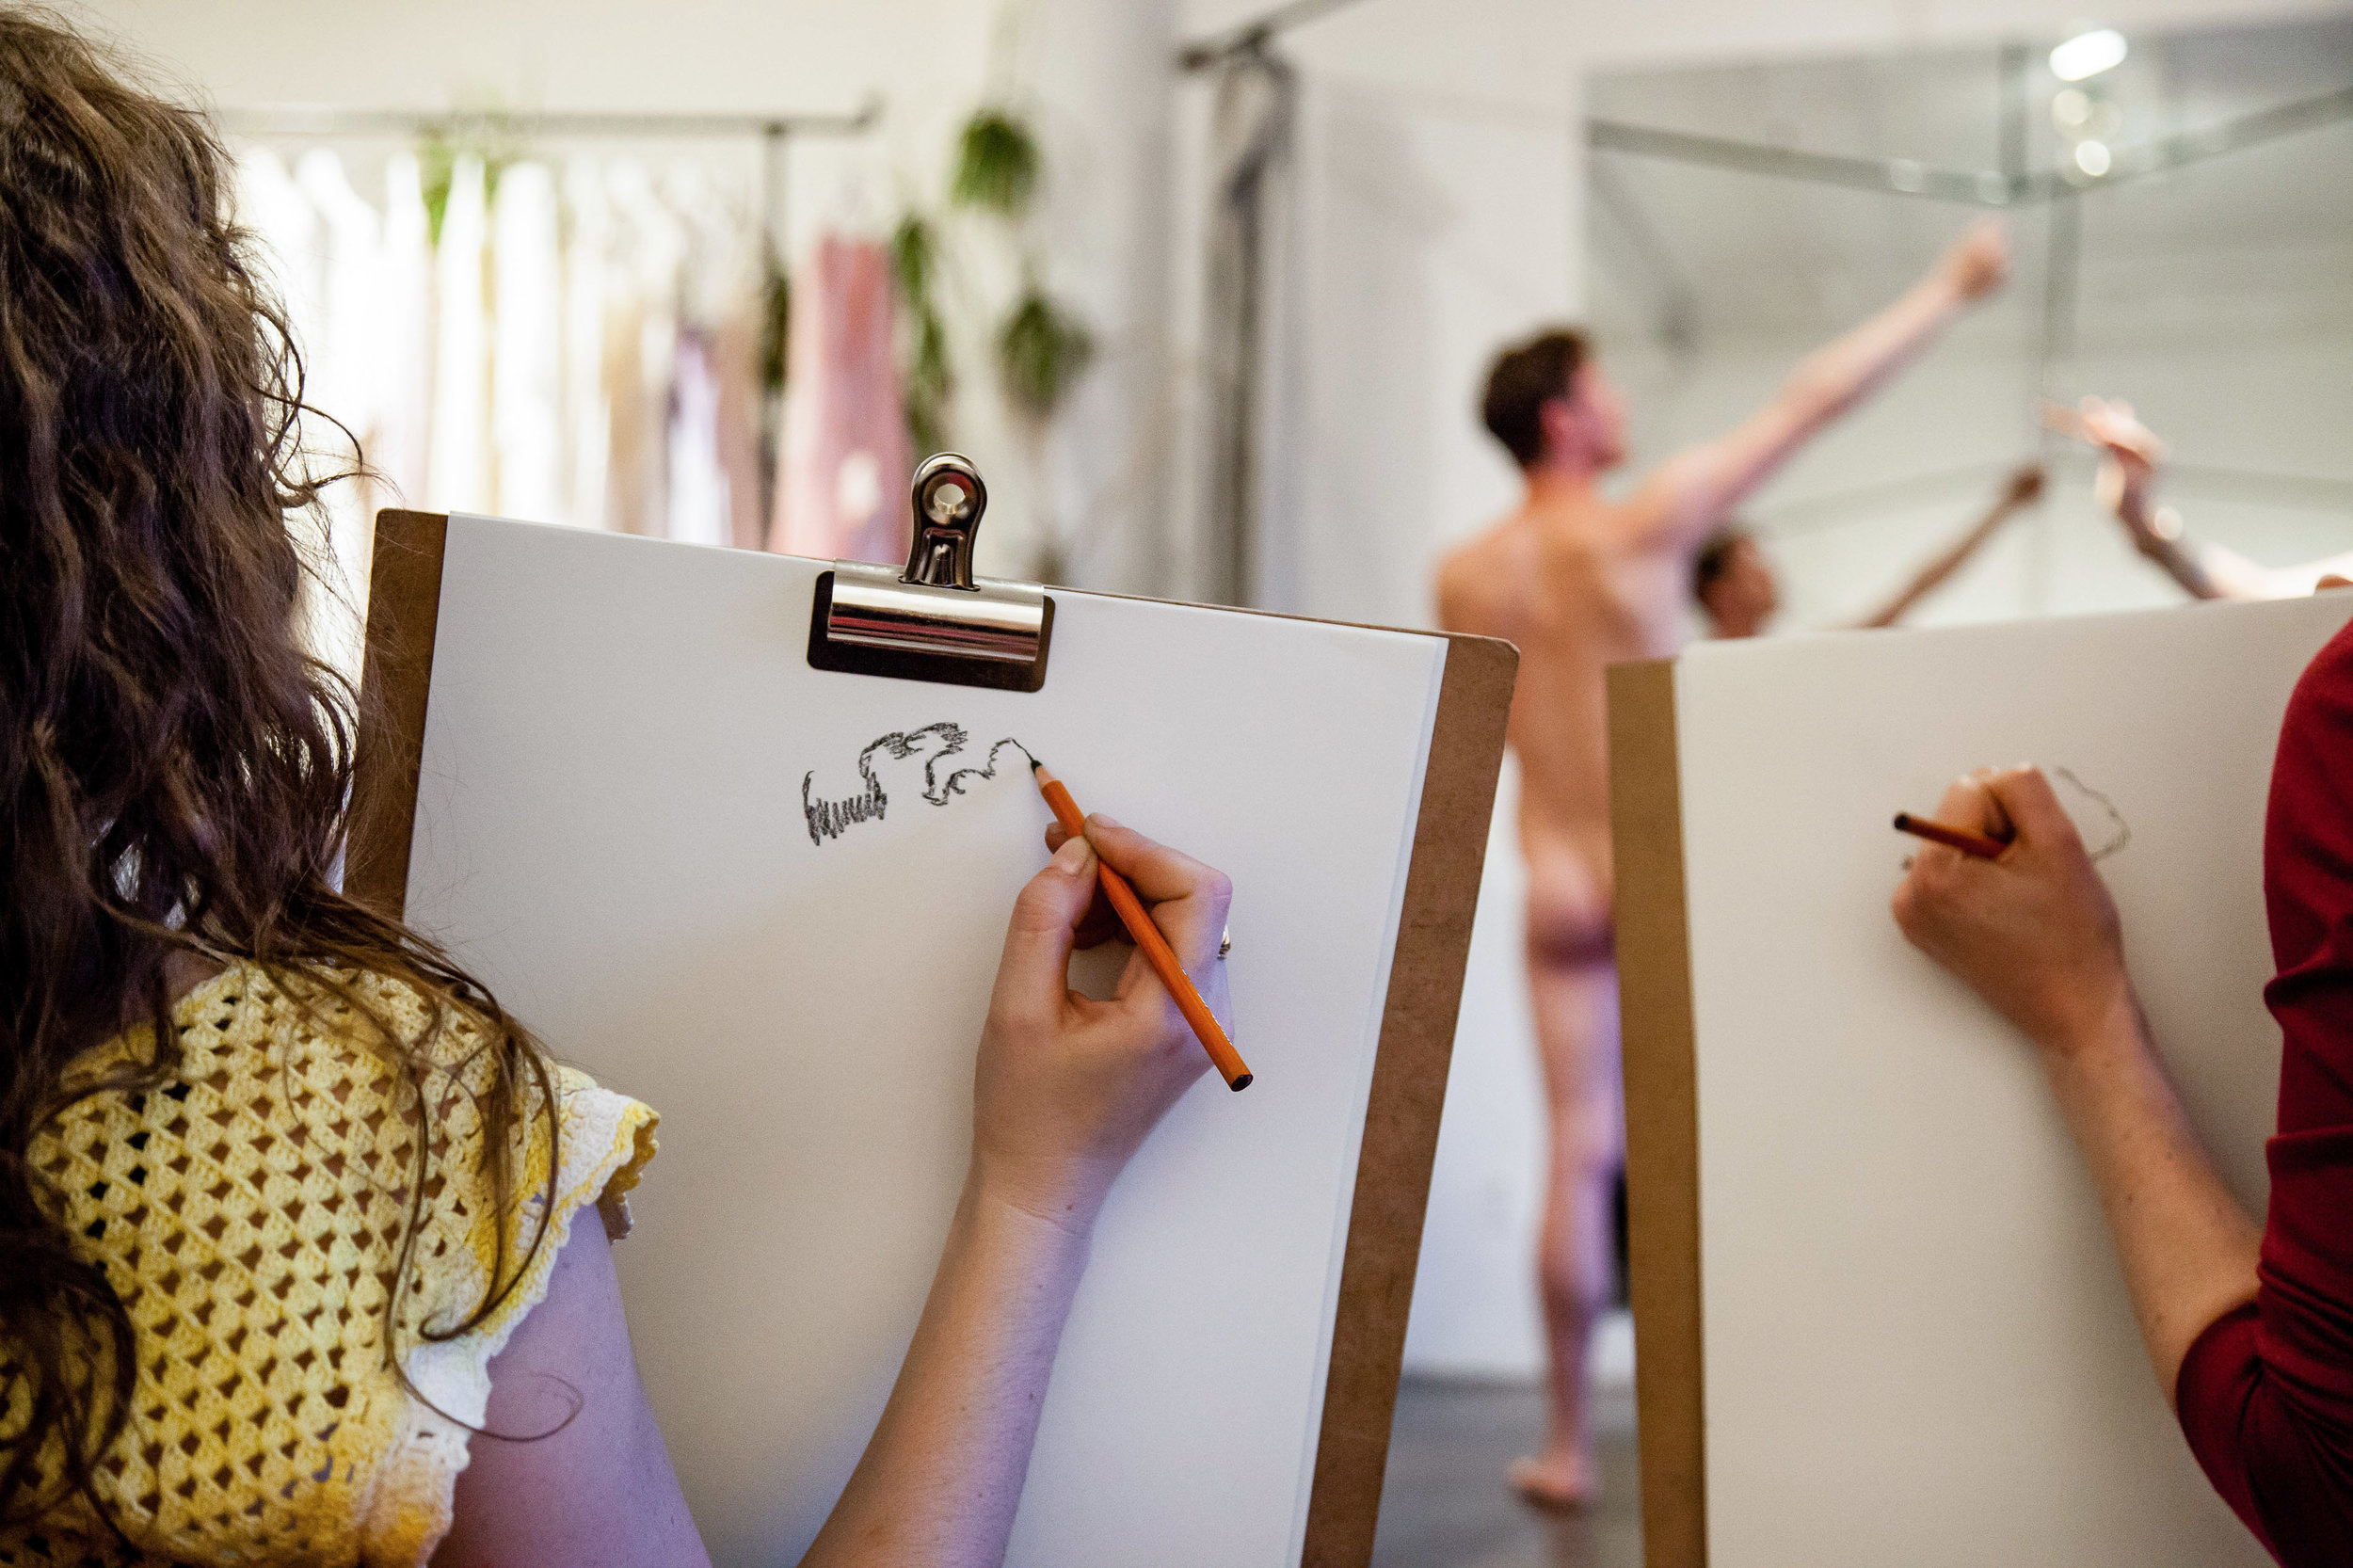 KRISTY_MAY_ Drawing and nude bottom - Artful Bachelorette .jpg